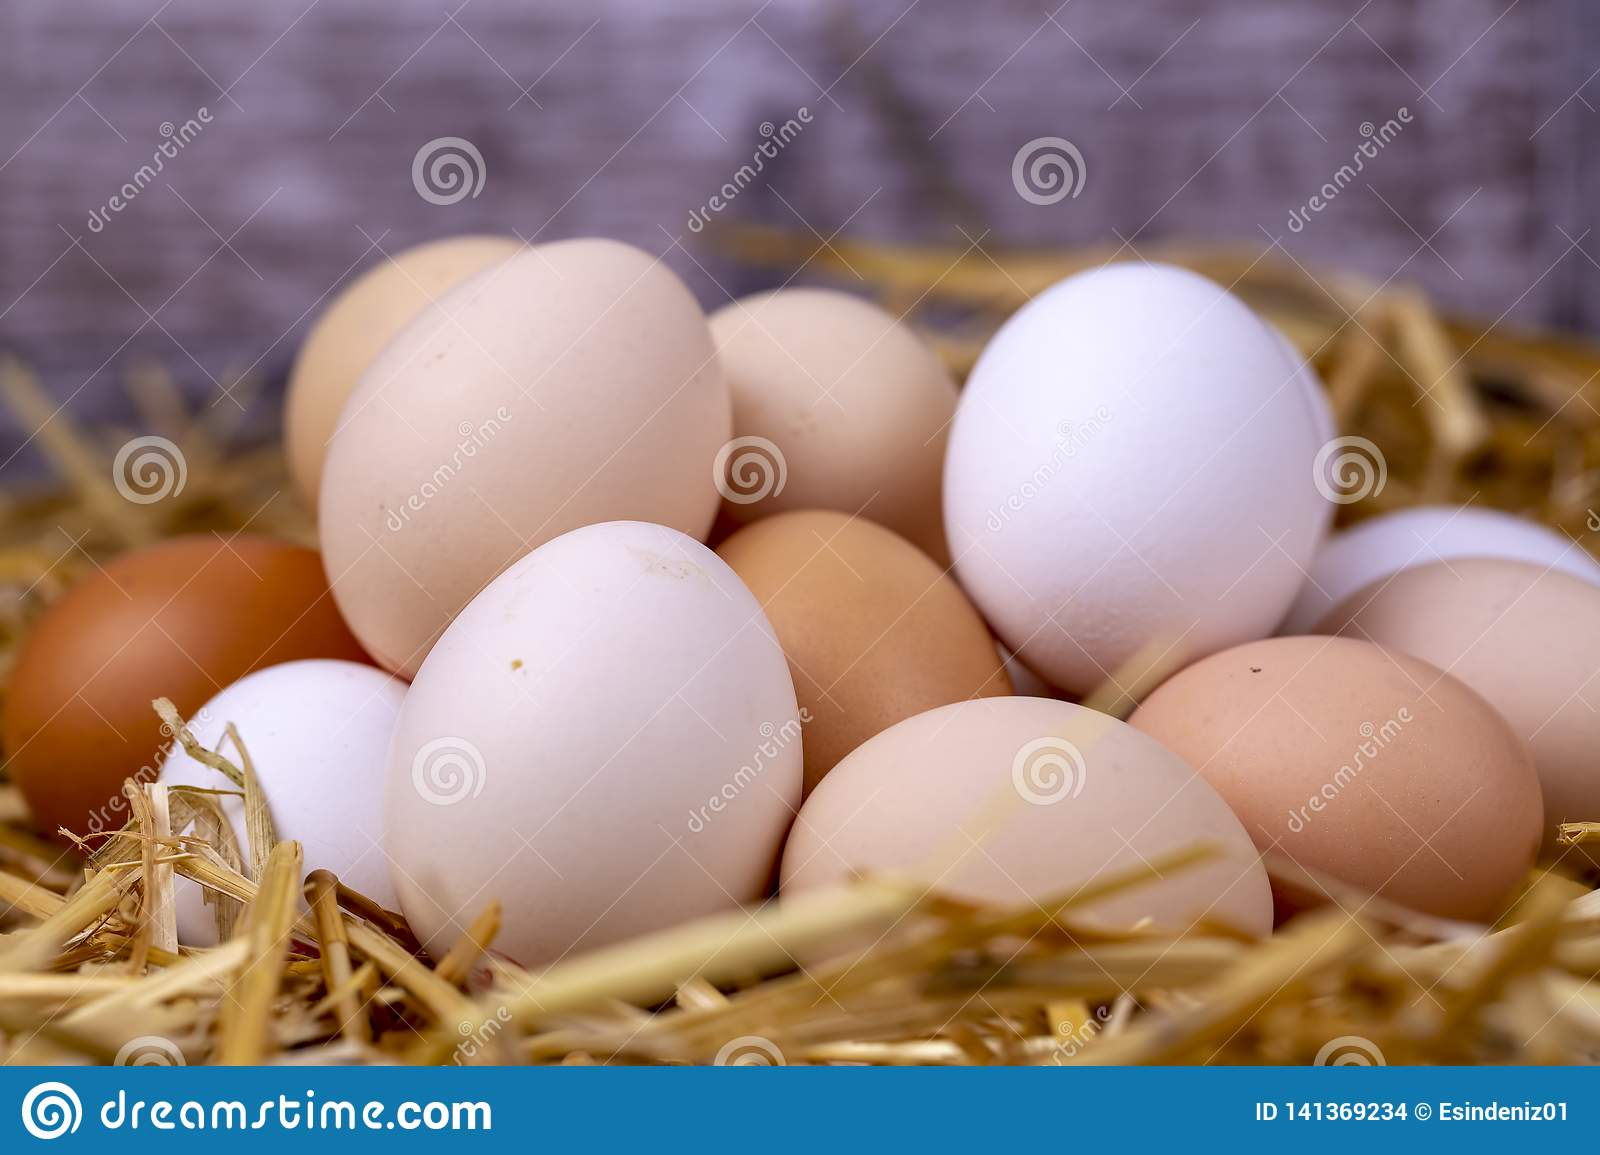 Raw eggs in dry straw. Food concept photo